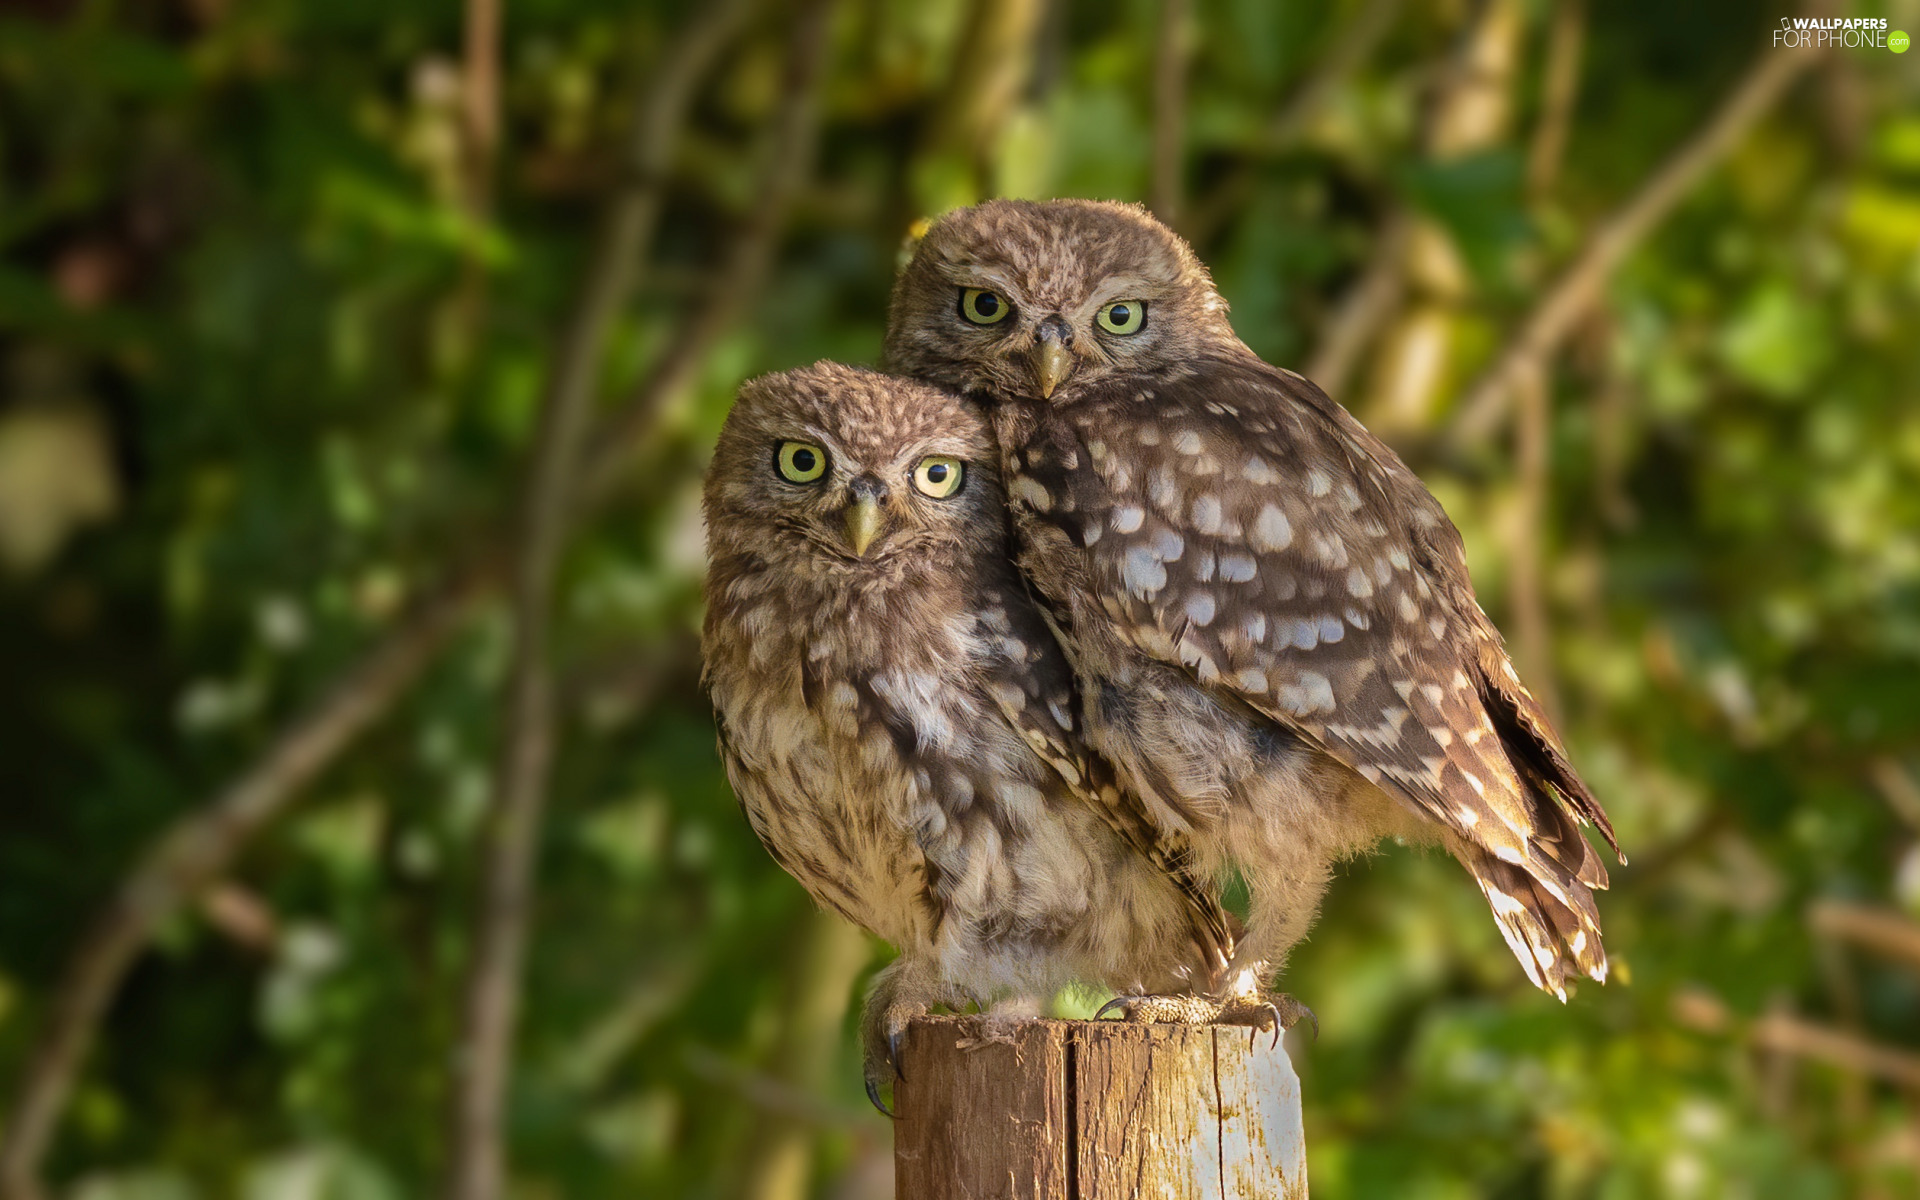 Two, Little Owl, snag, Owls